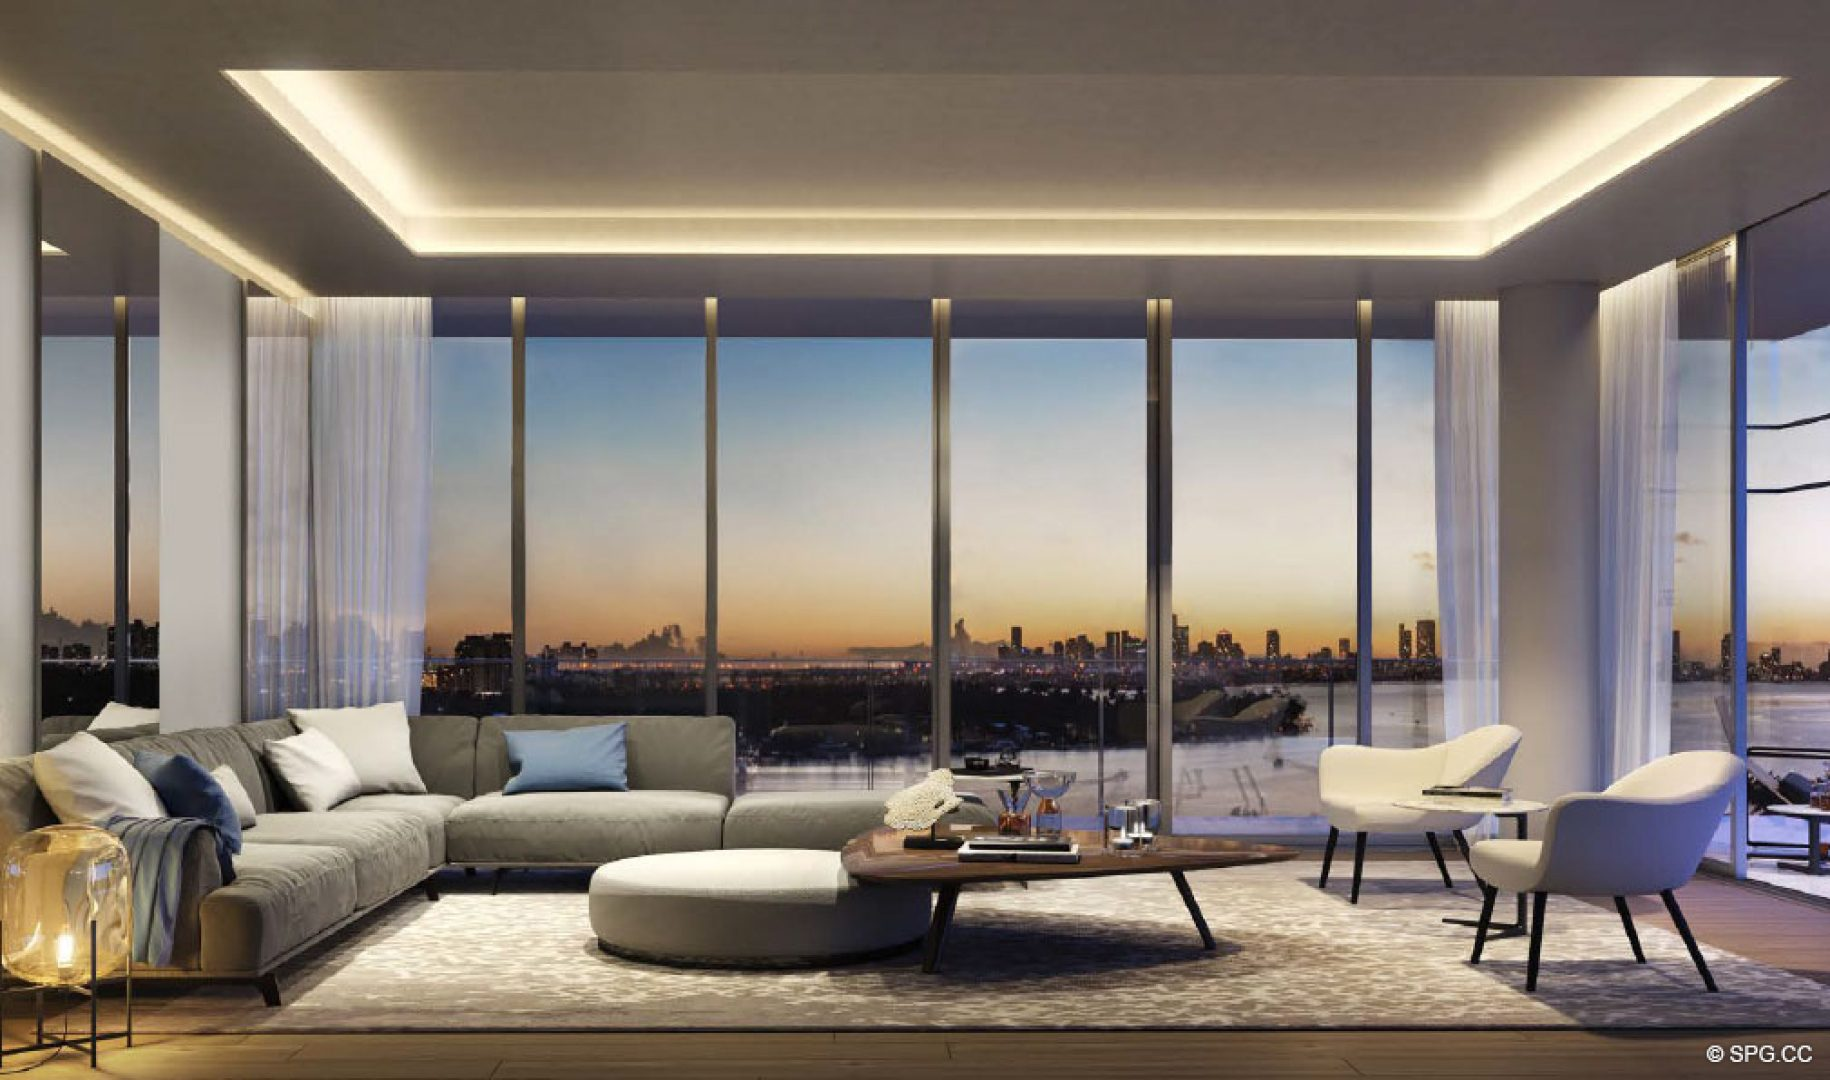 Expansive Living Room in 3900 Alton, Luxury Waterfront Condos in Miami Beach, Florida 33140